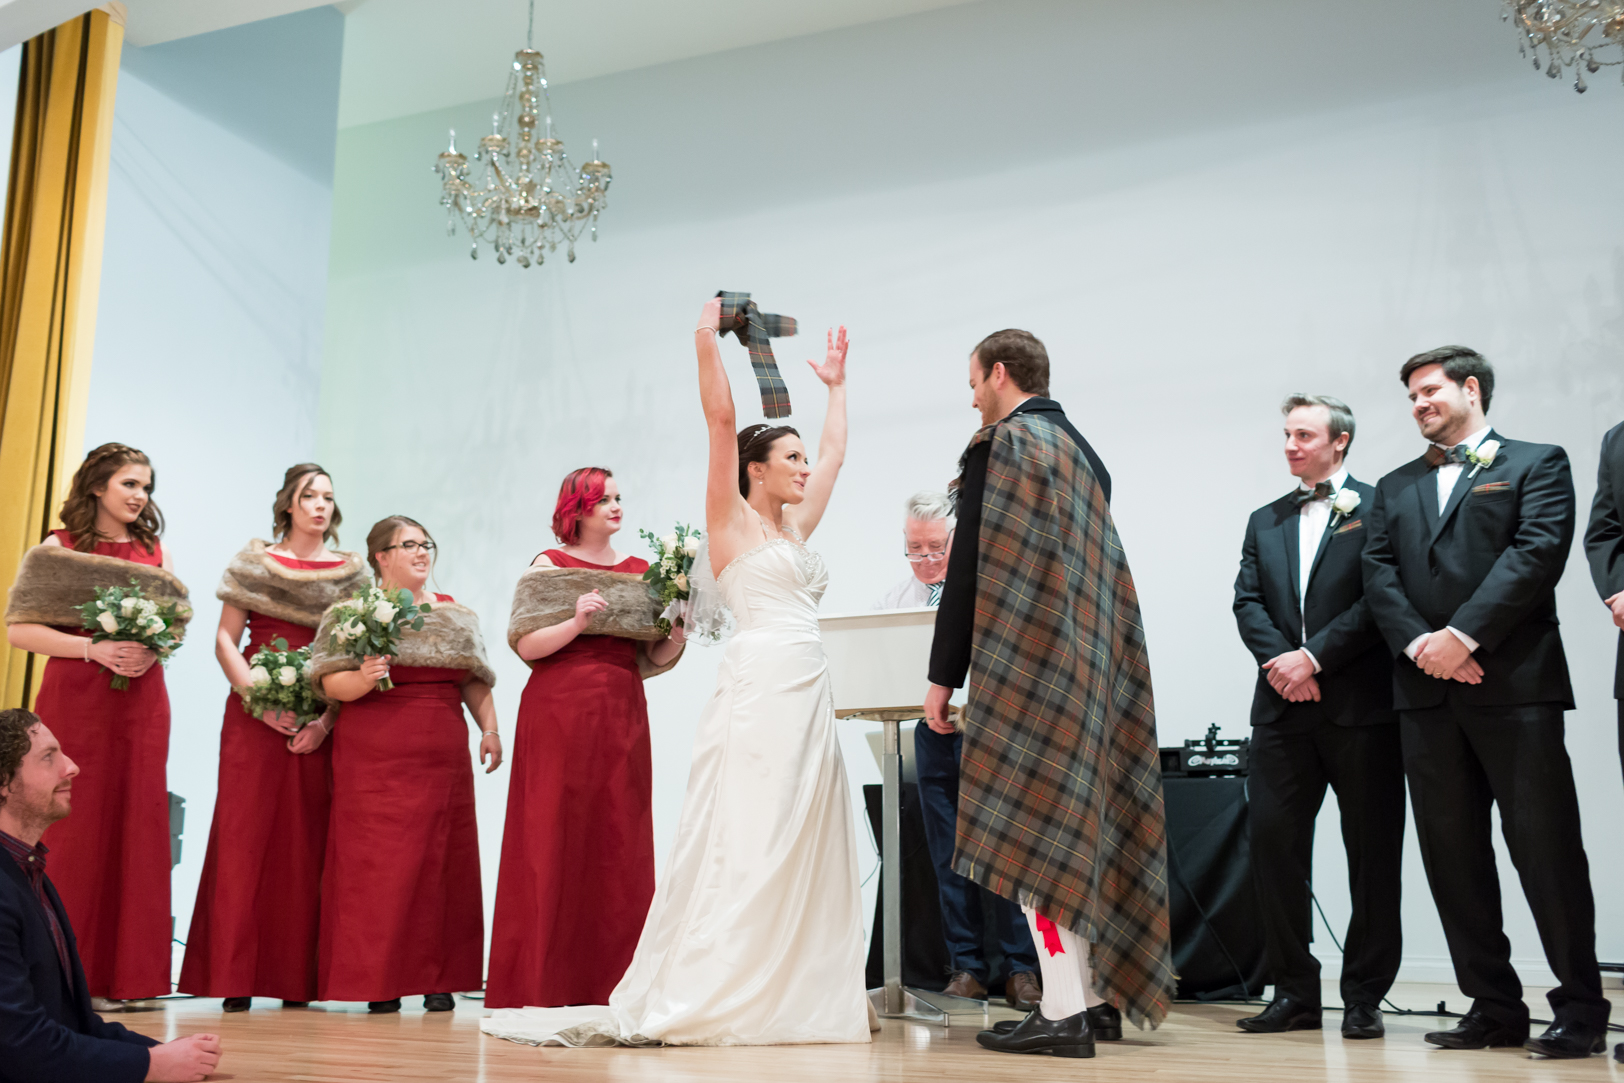 fun wedding ceremony photo